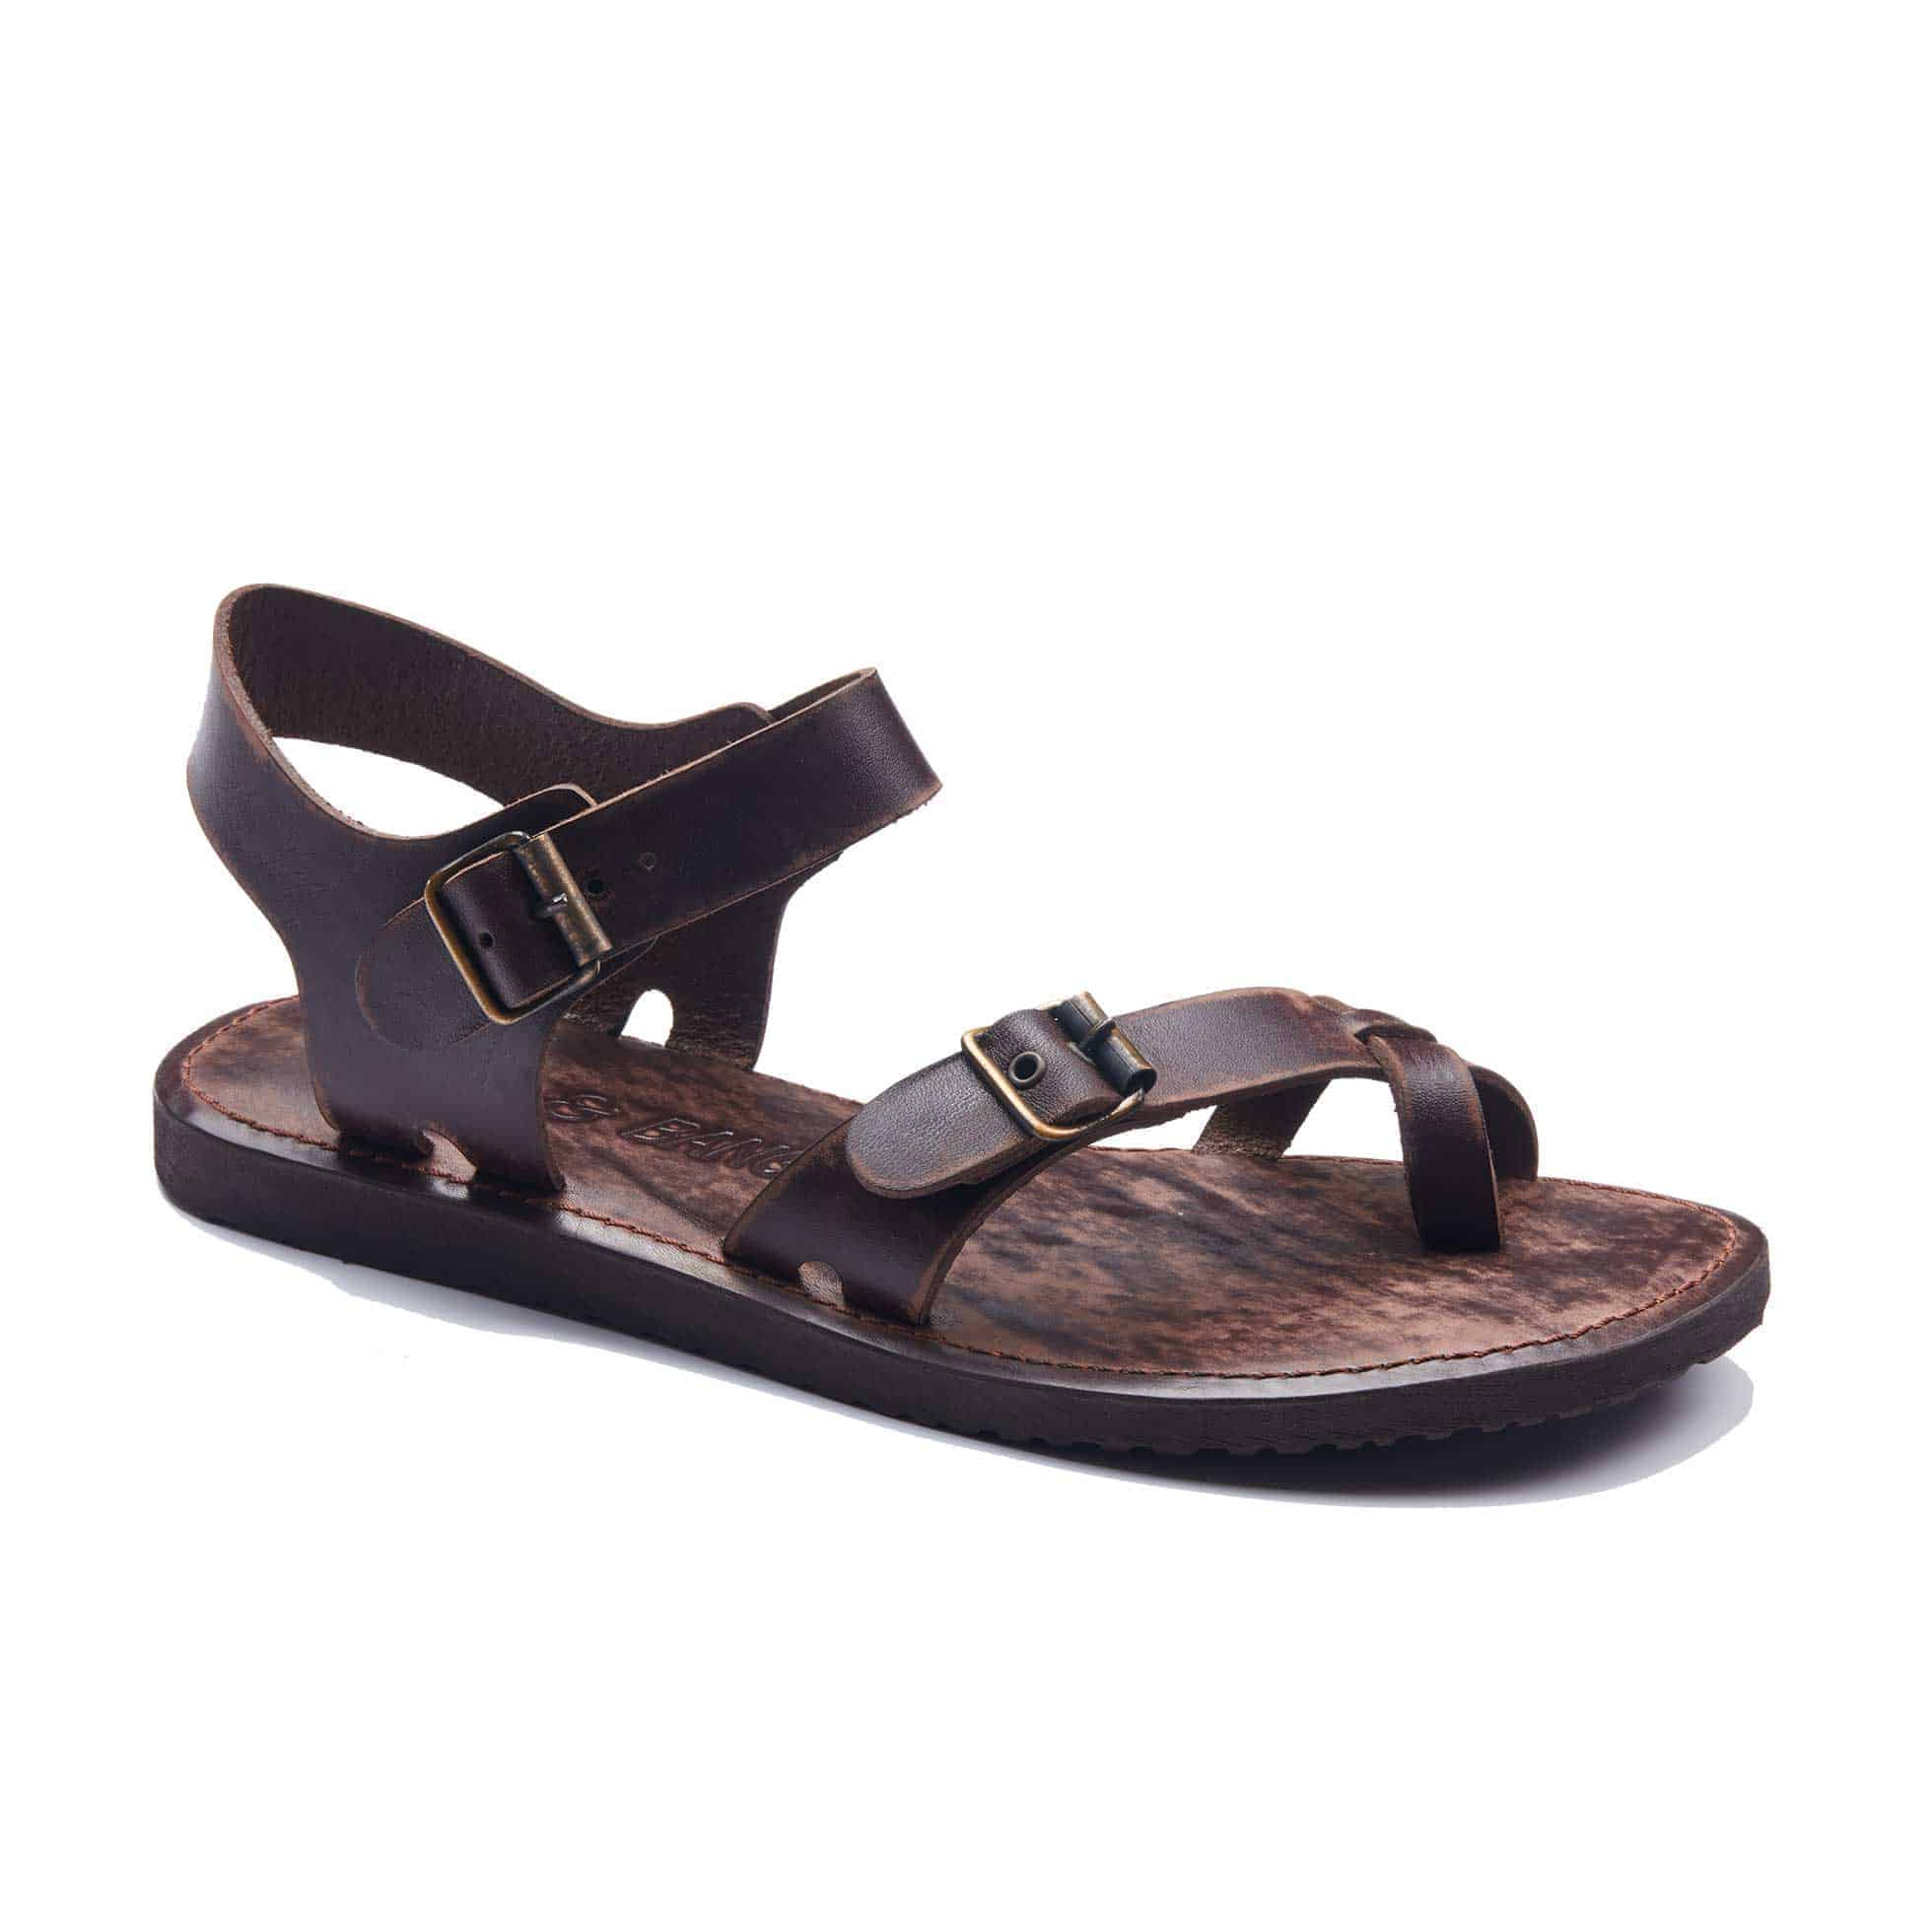 57ada86636199 Handmade Leather Bodrum Sandals- Best Mens Strappy Leather Sandals.